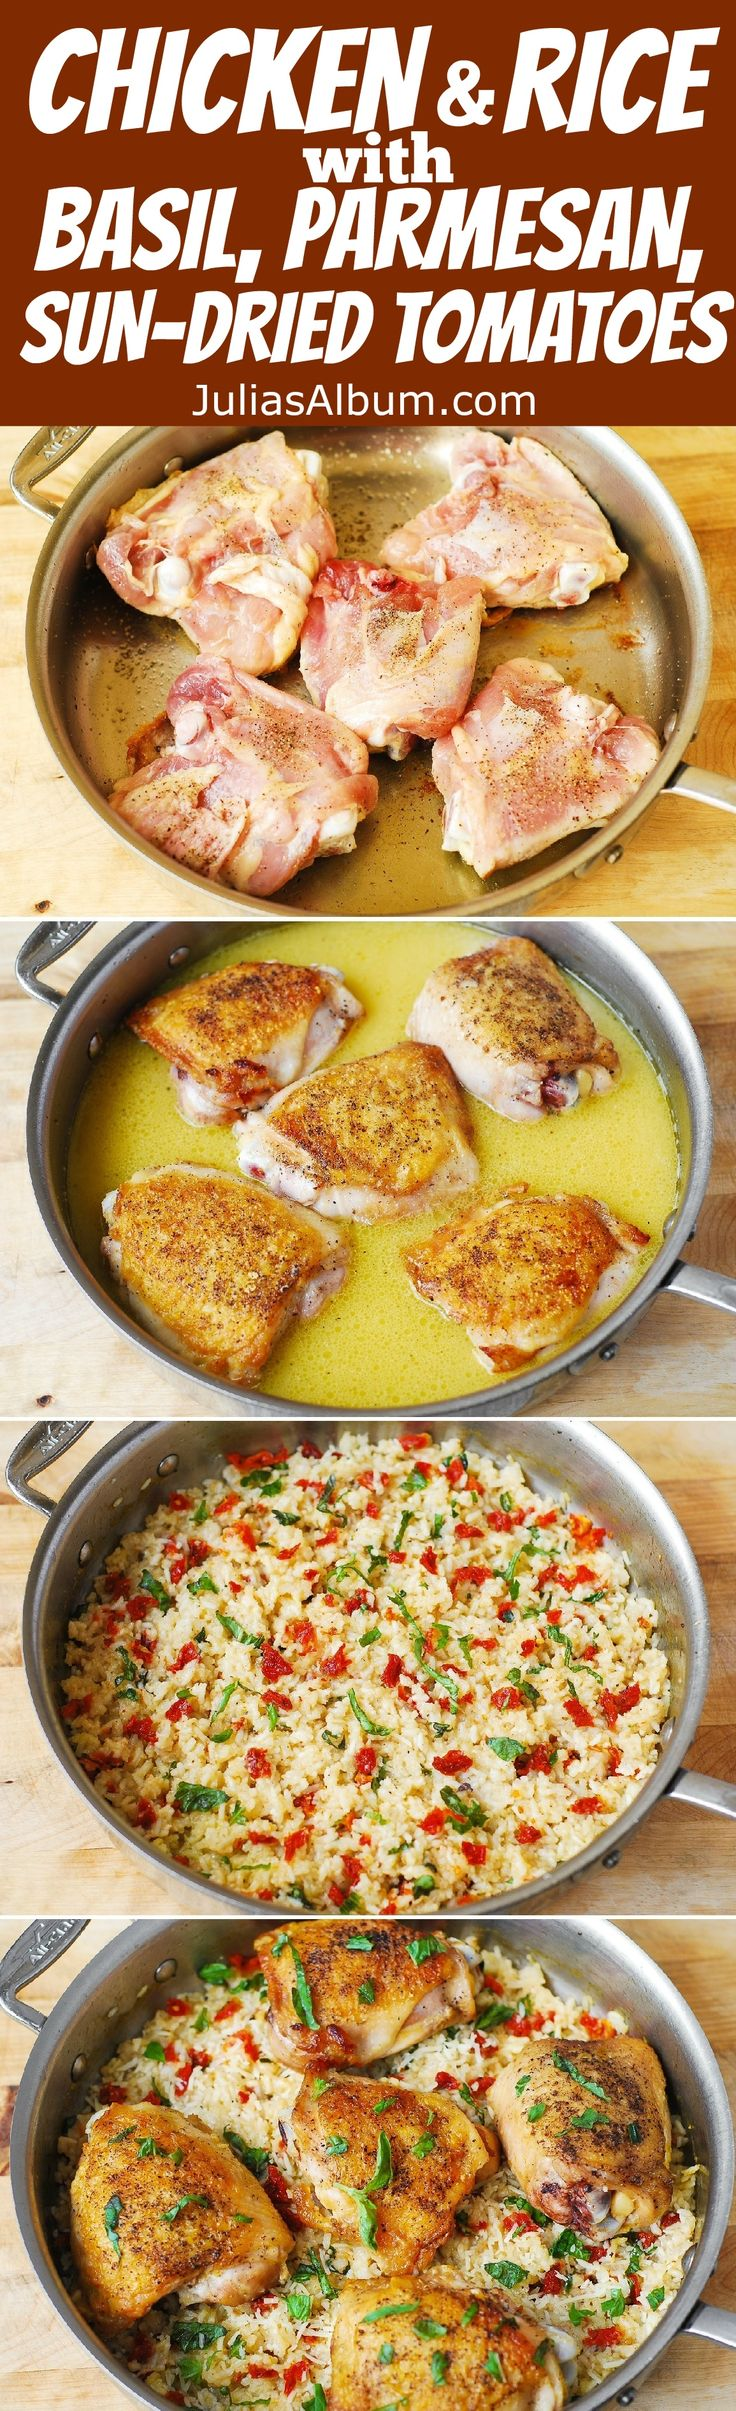 Chicken Thighs with Sun-Dried Tomato Basil Rice - easy, one-pan gluten free recipe.